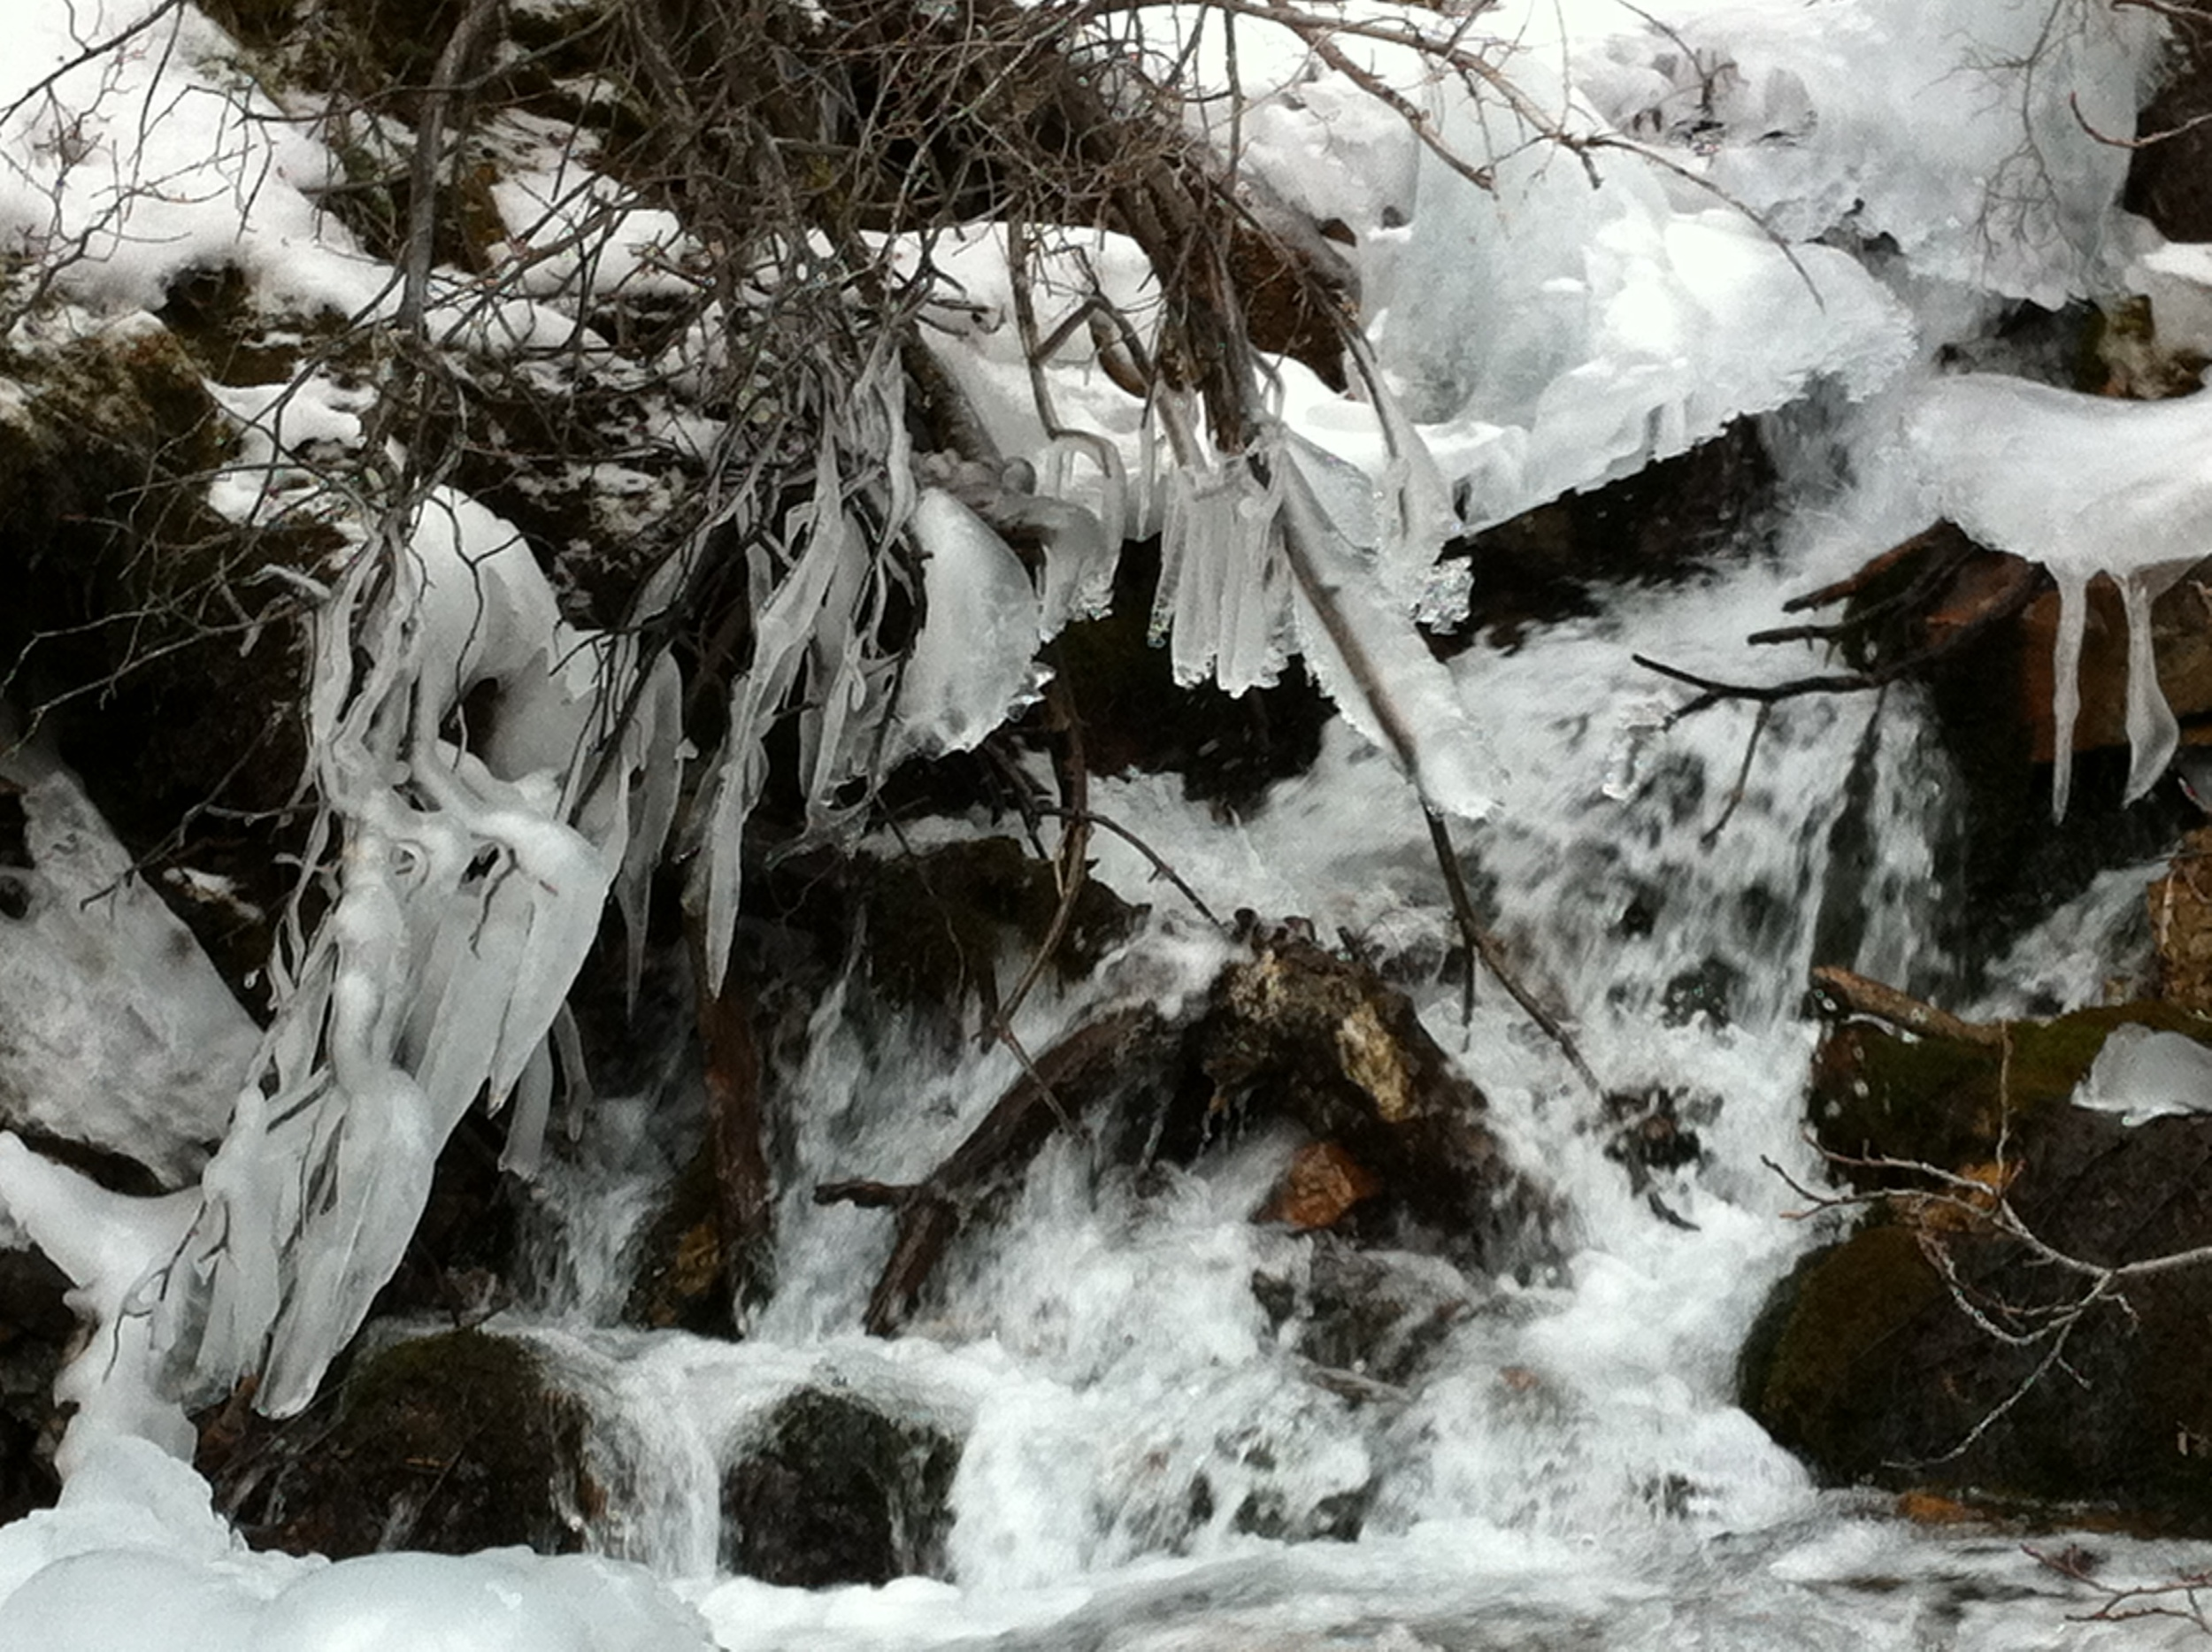 The ice formations were like abstract sculptures.